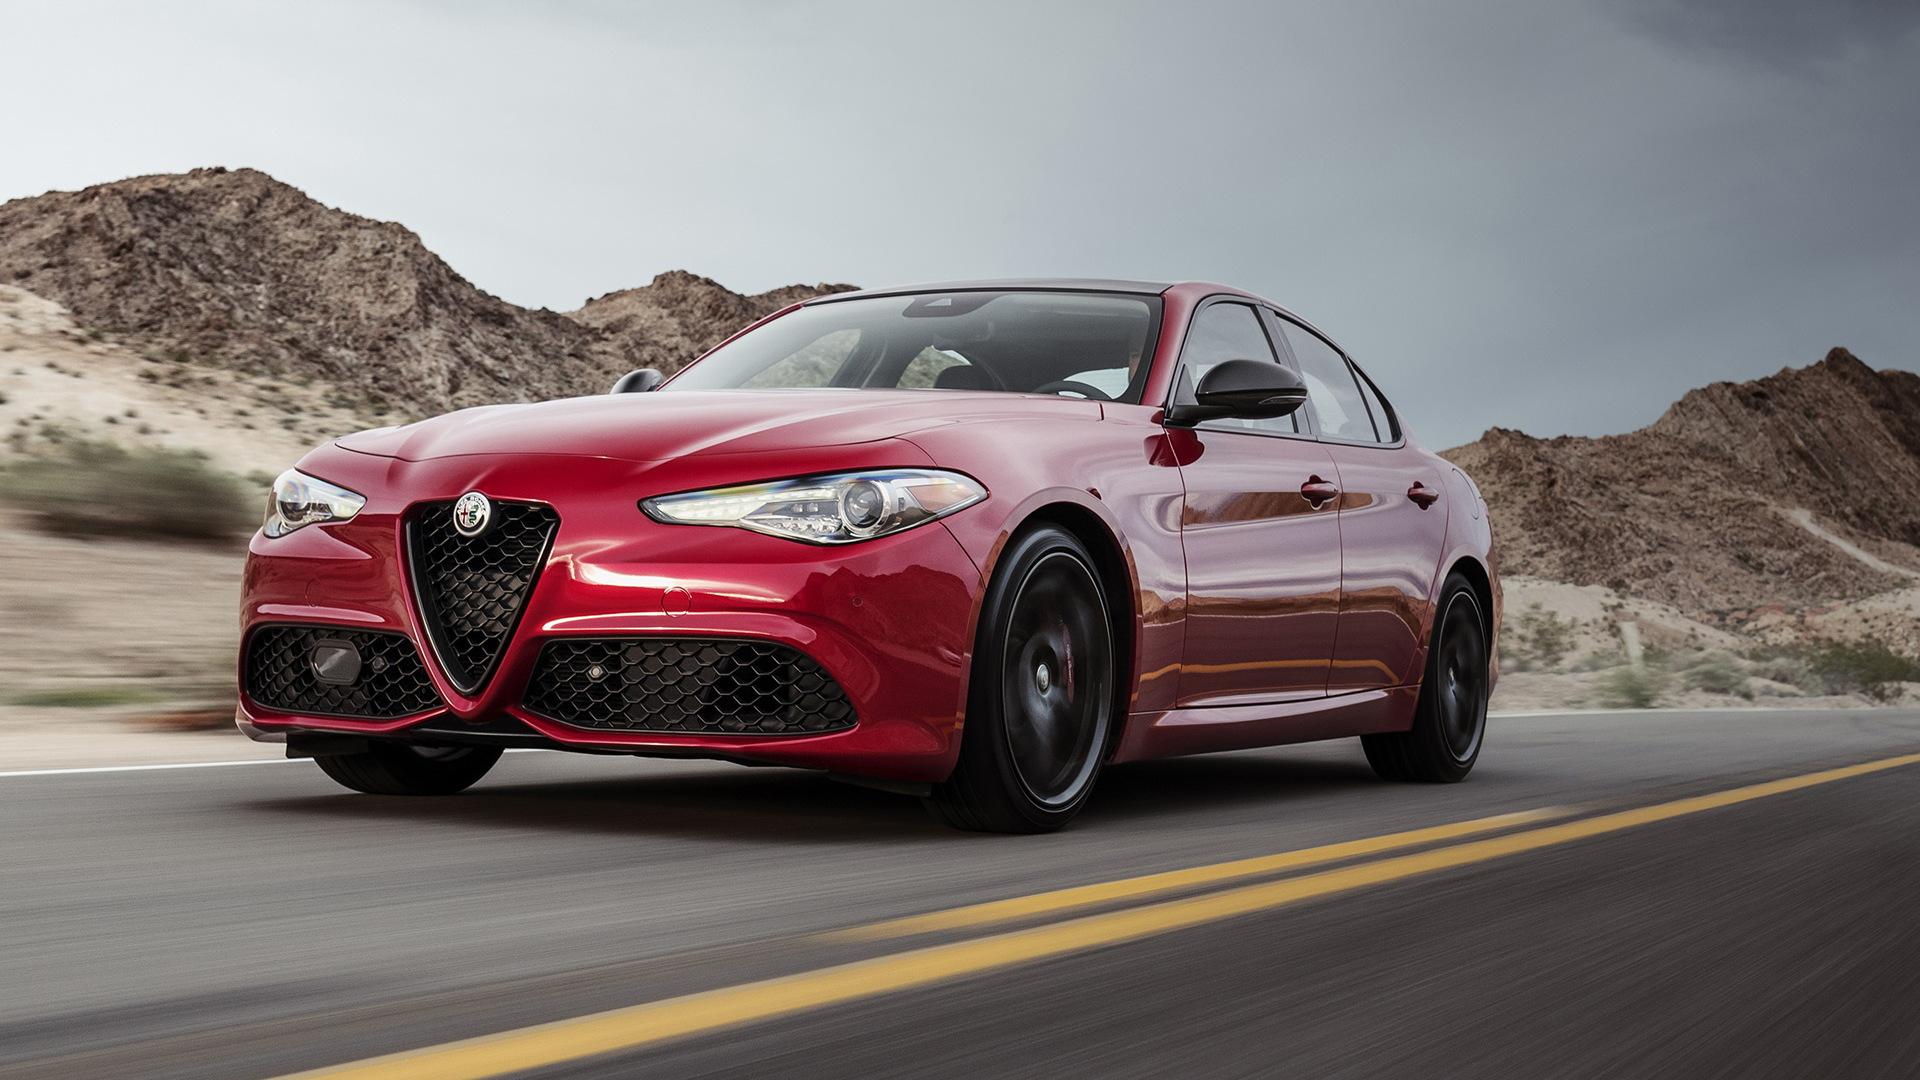 2019 Alfa Romeo Giulia equipped with Nero Edizione package